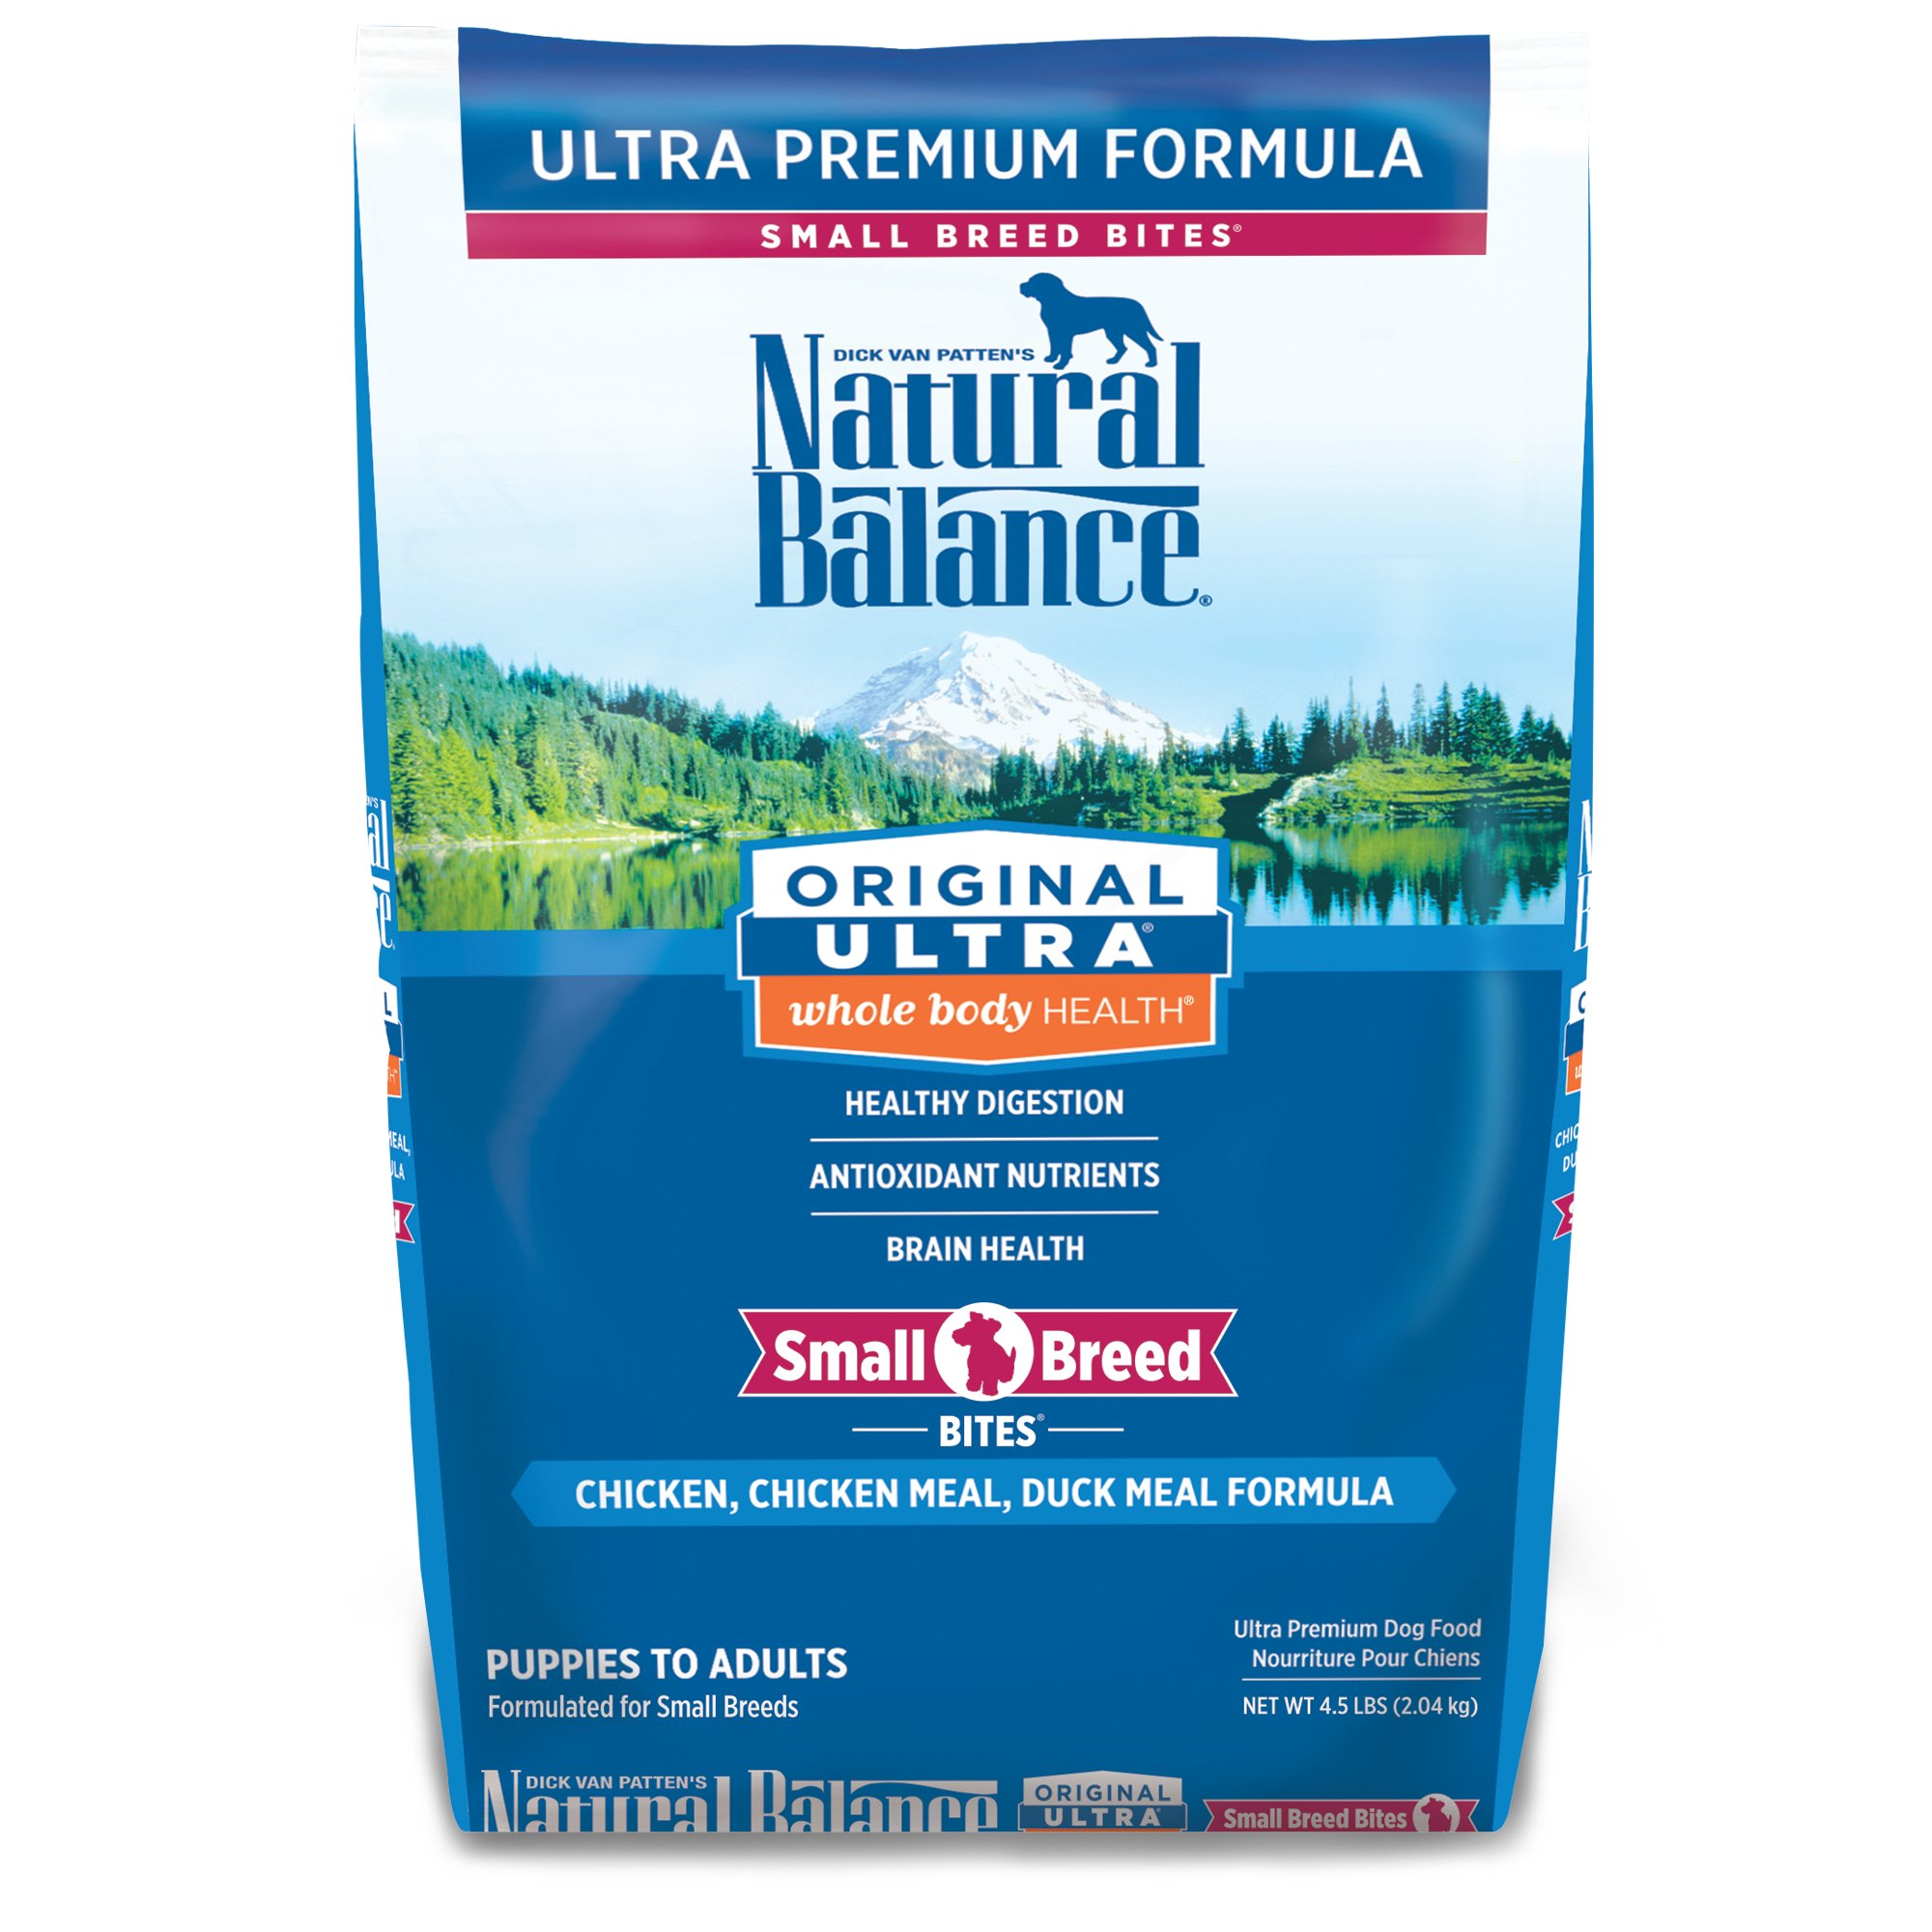 Natural Balance Original Ultra Whole Body Health Dog Food | Petco